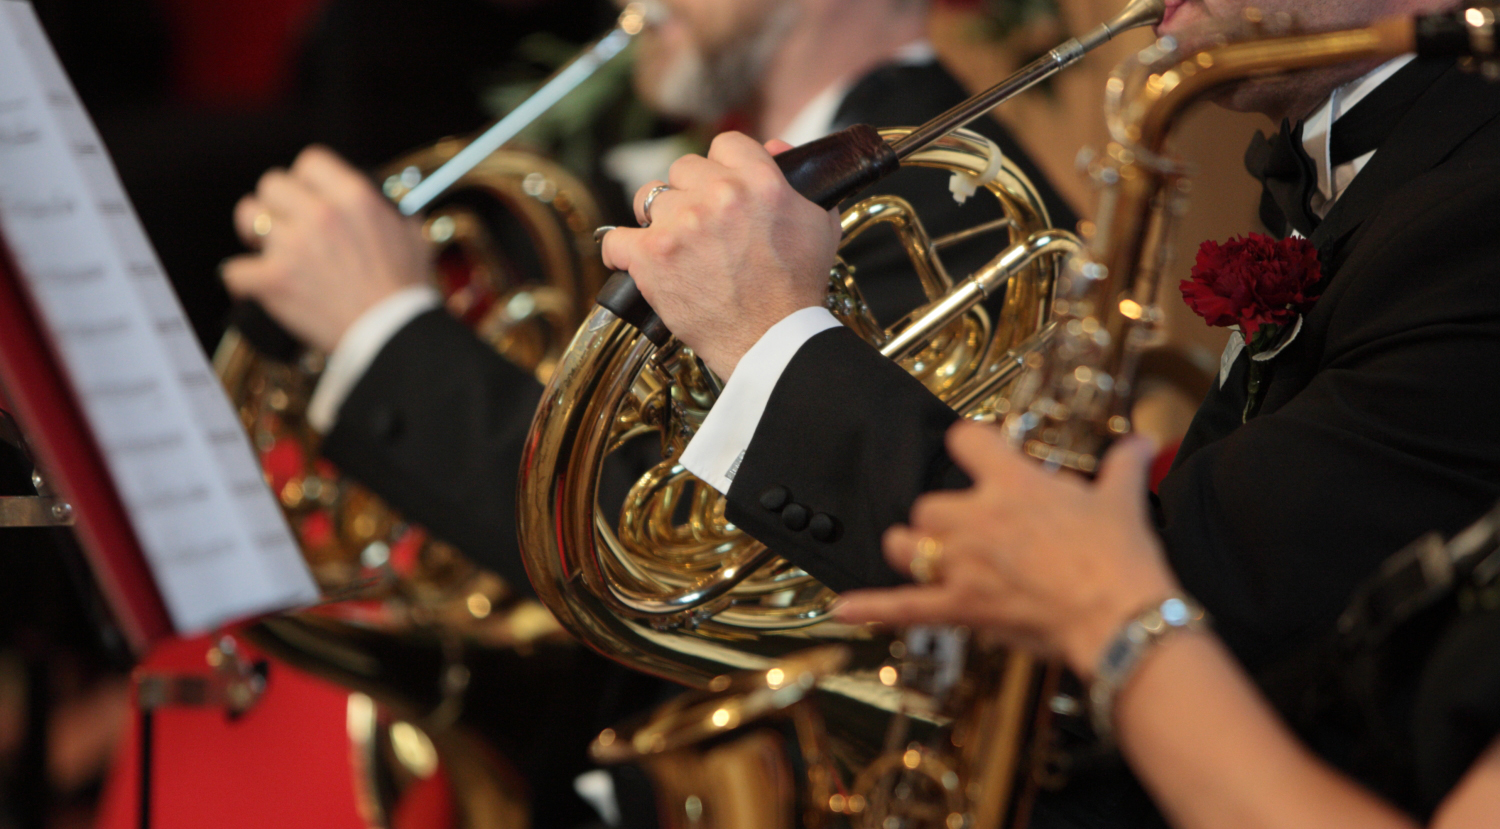 Join Us... - Click Here for more information on how to be involved with The Roding Players Orchestra.